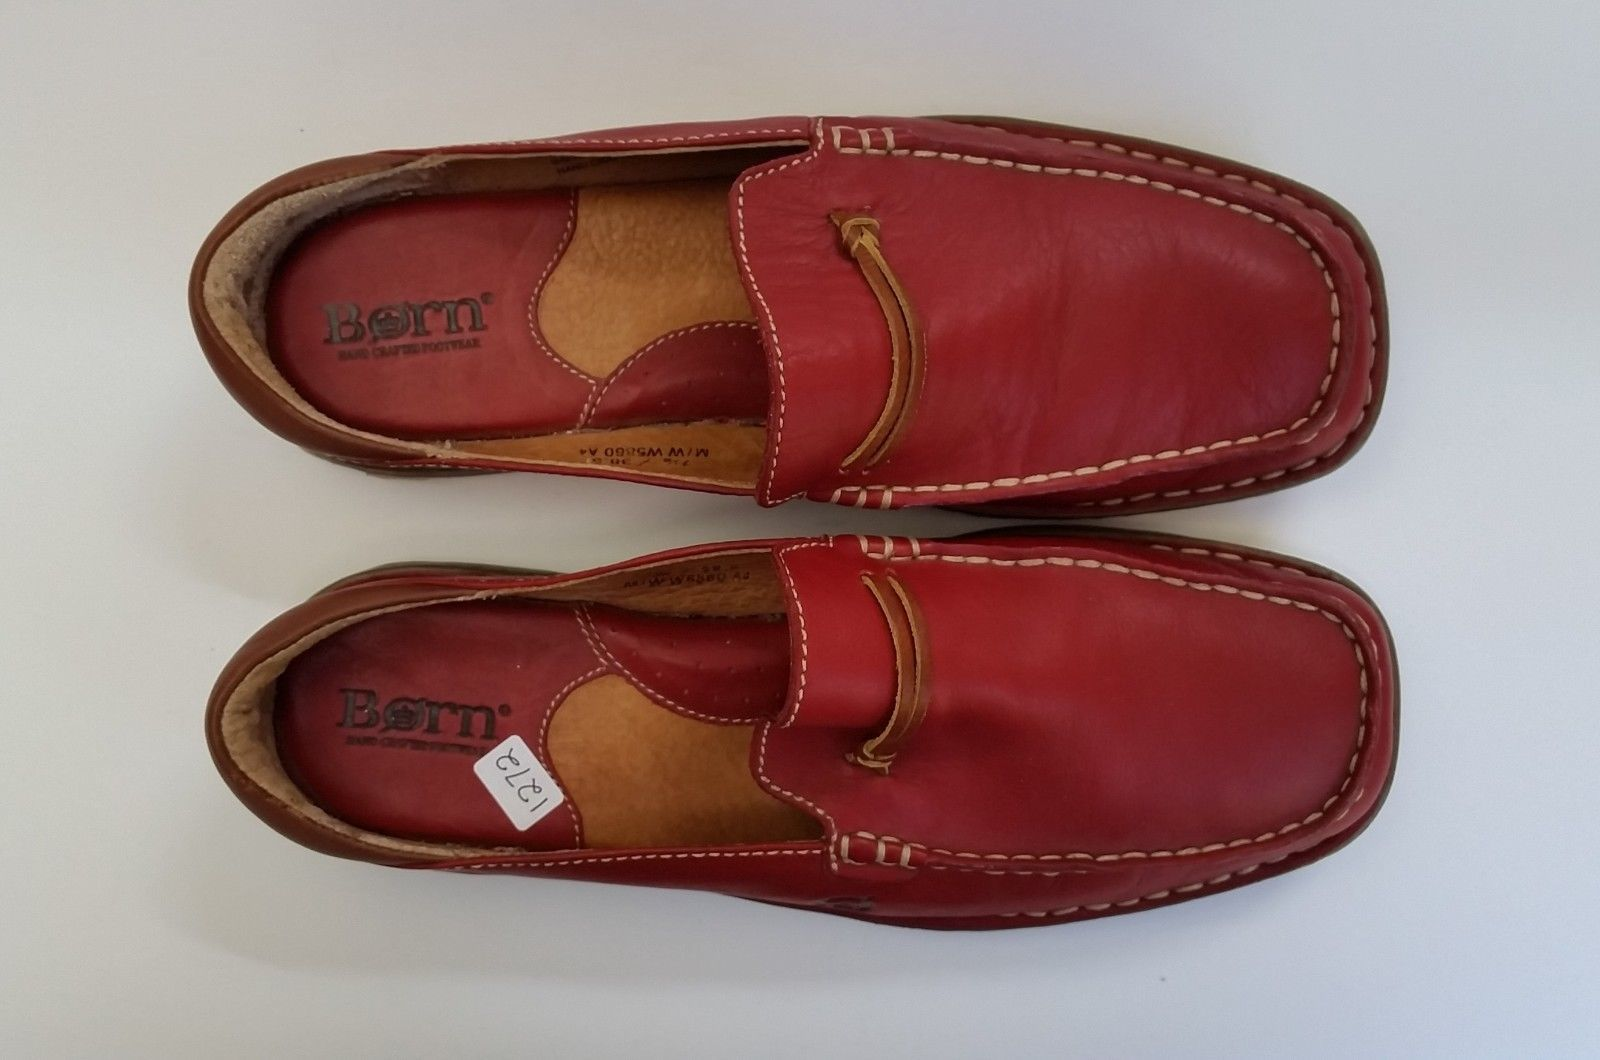 Born Shoes Mules Slides Flats Red Hand Crafted Leather Womens Size 7.5 M EU 38.5